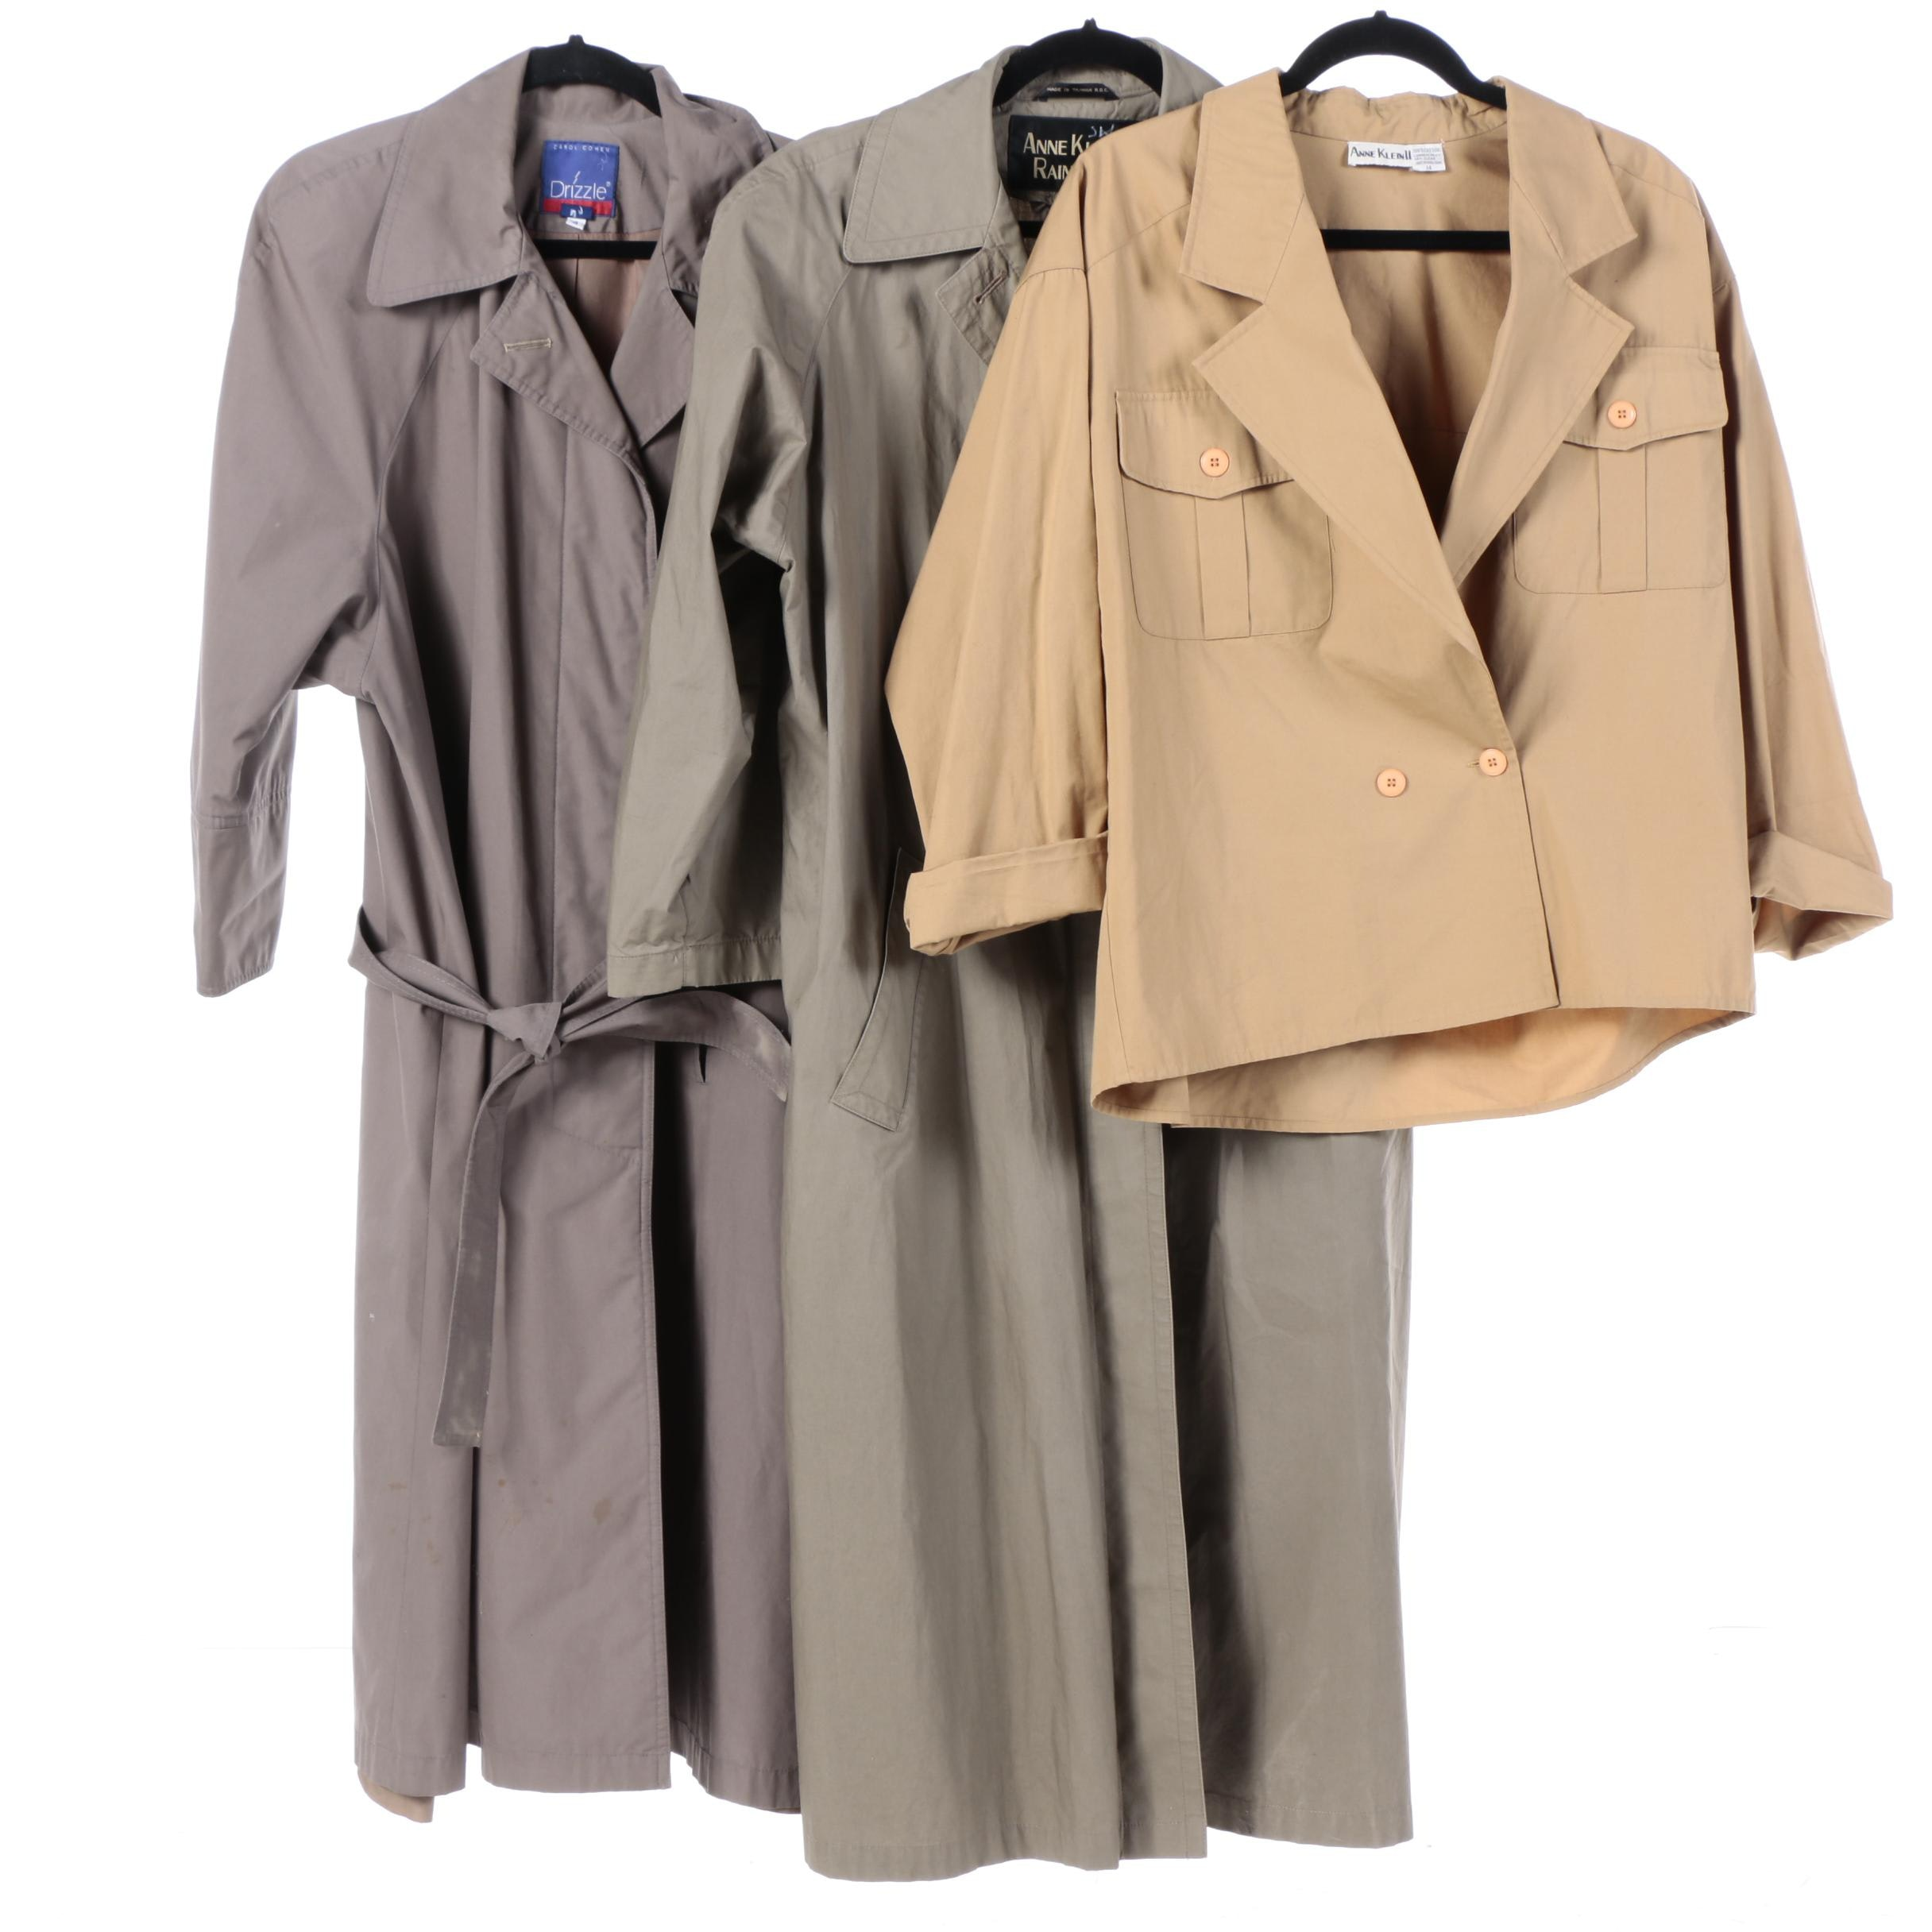 Women's Trench Coats and Jacket Including Anne Klein II